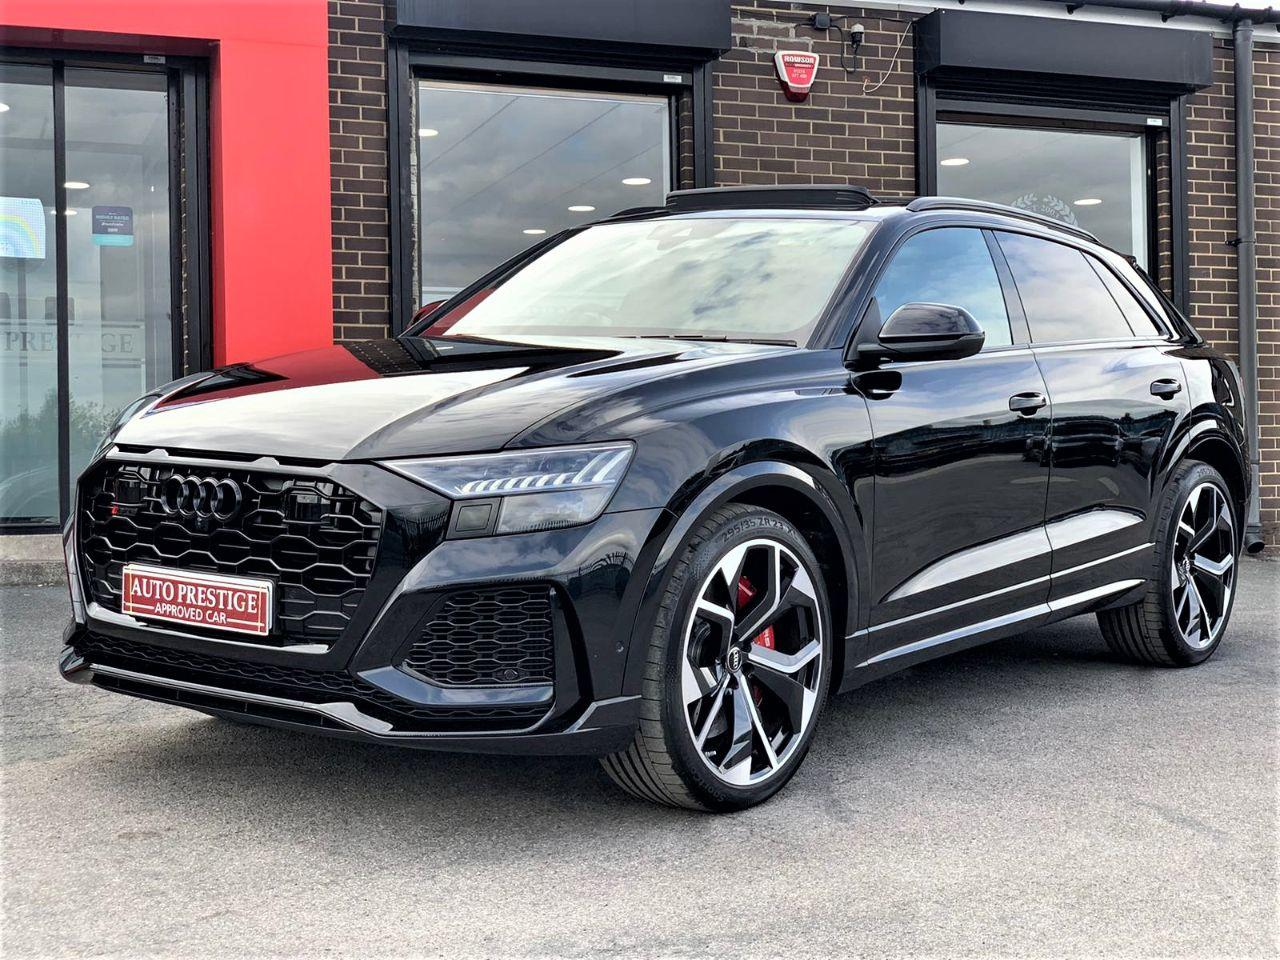 Audi Rs Q8 4.0 RS Q8 TFSI Quattro Vorsprung 5dr Tiptronic RED STITCHED LEATHER AS NEW... Estate Petrol Black at Autoprestige Bradford